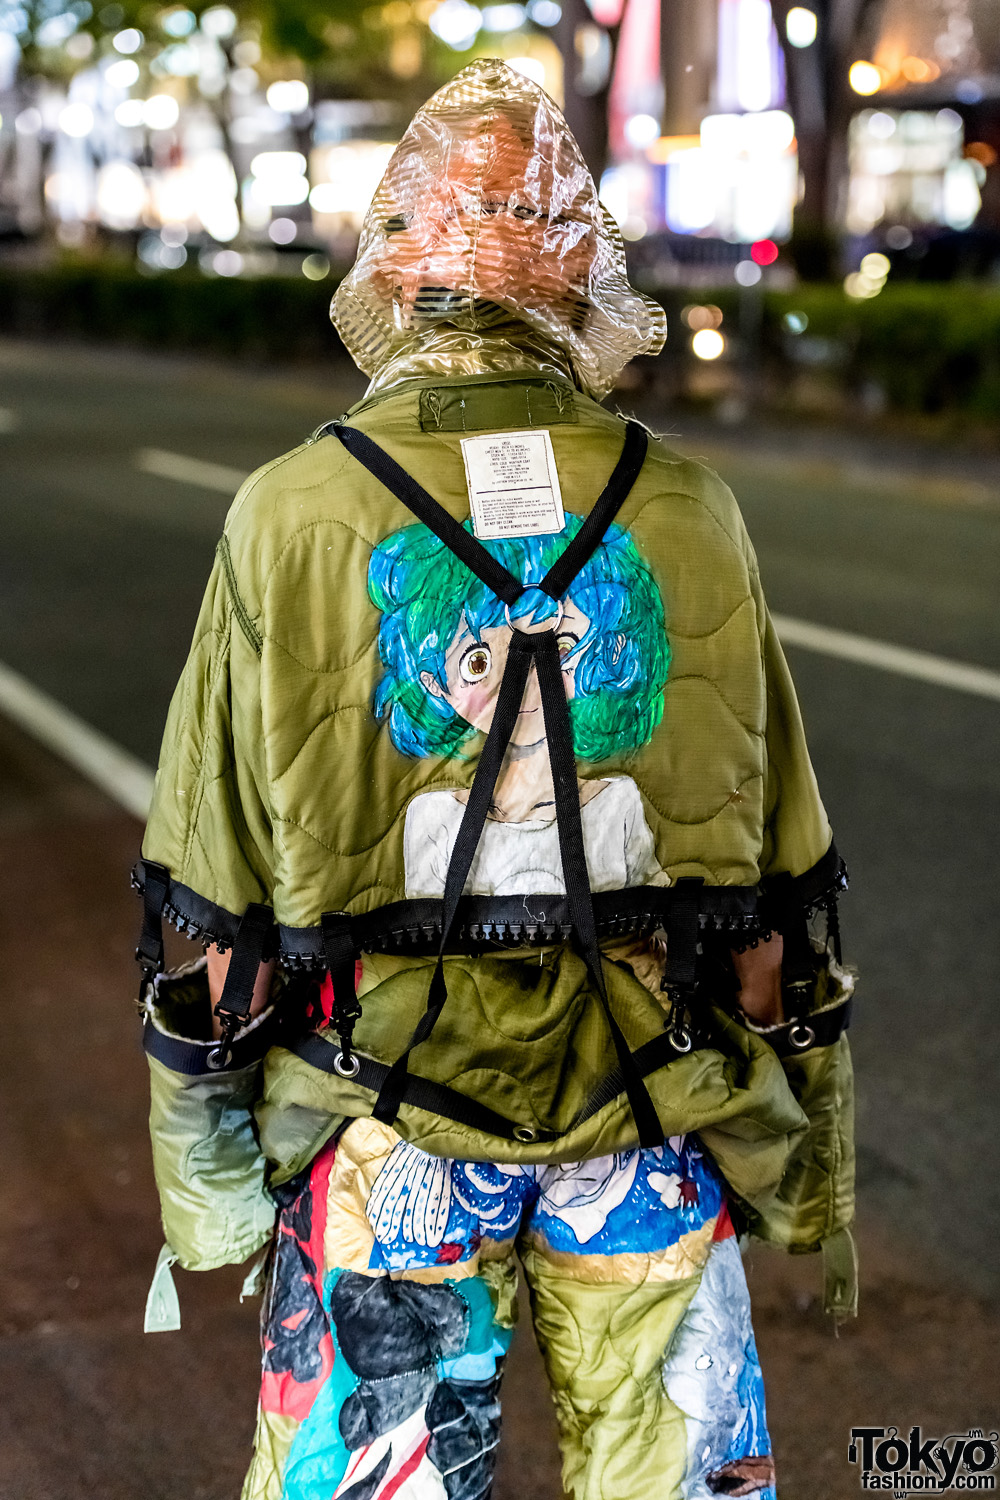 Dog Harajuku Fashion Fangophilia Rings Myob Nyc Bag: Japanese Avant-Garde Street Style W/ Dog Harajuku Remake